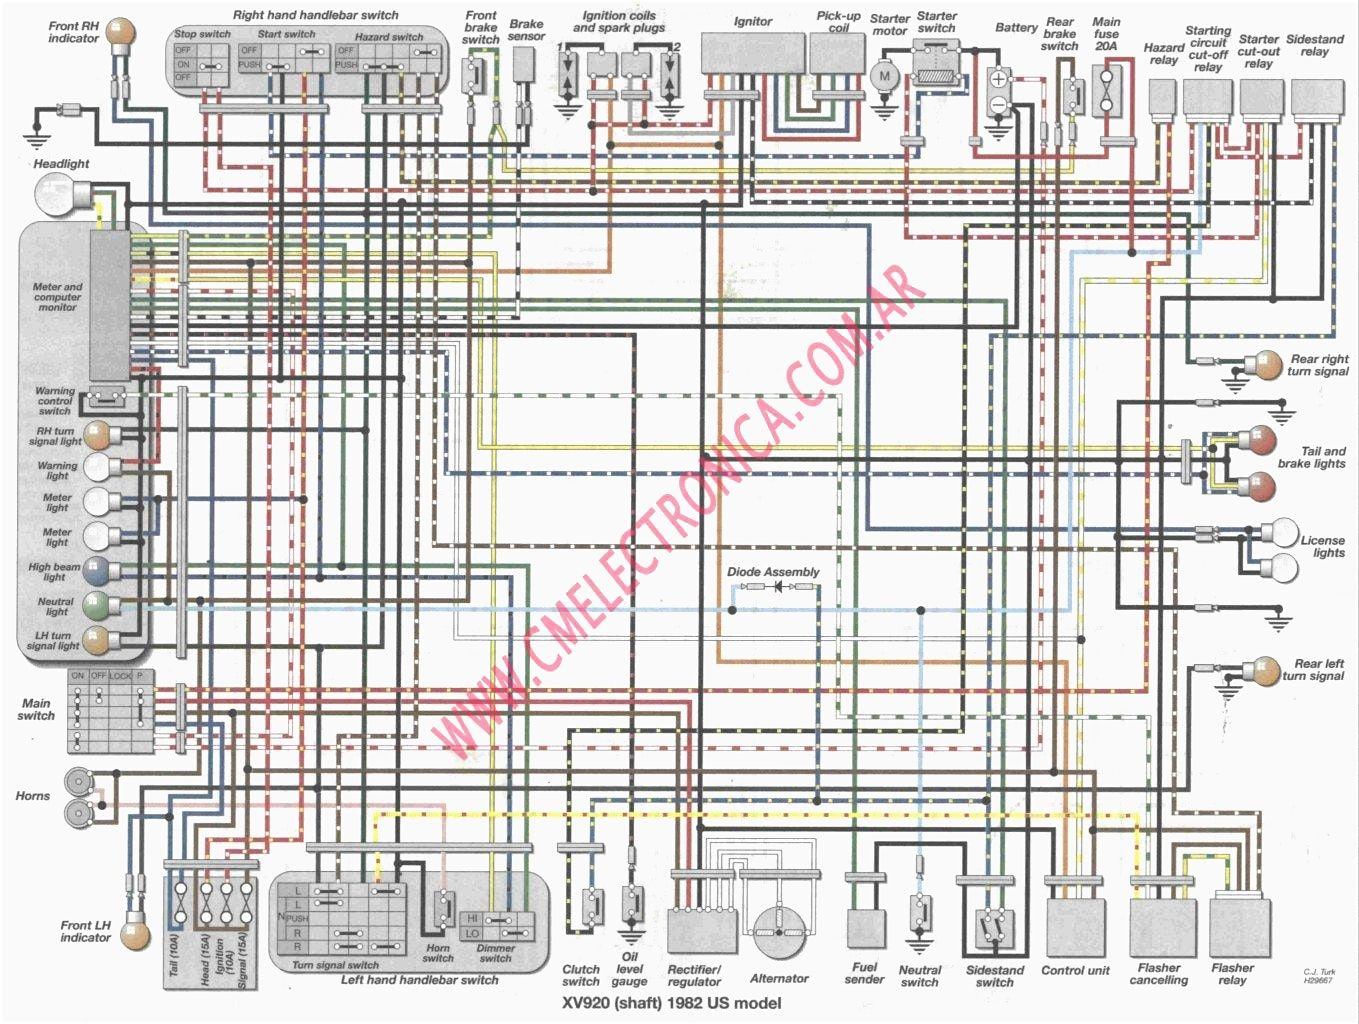 diagrams 15341278 xv250 wiring diagram yamaha virago 250 inside new 1981 yamaha virago 750 ignition wiring diagram [ 1359 x 1024 Pixel ]